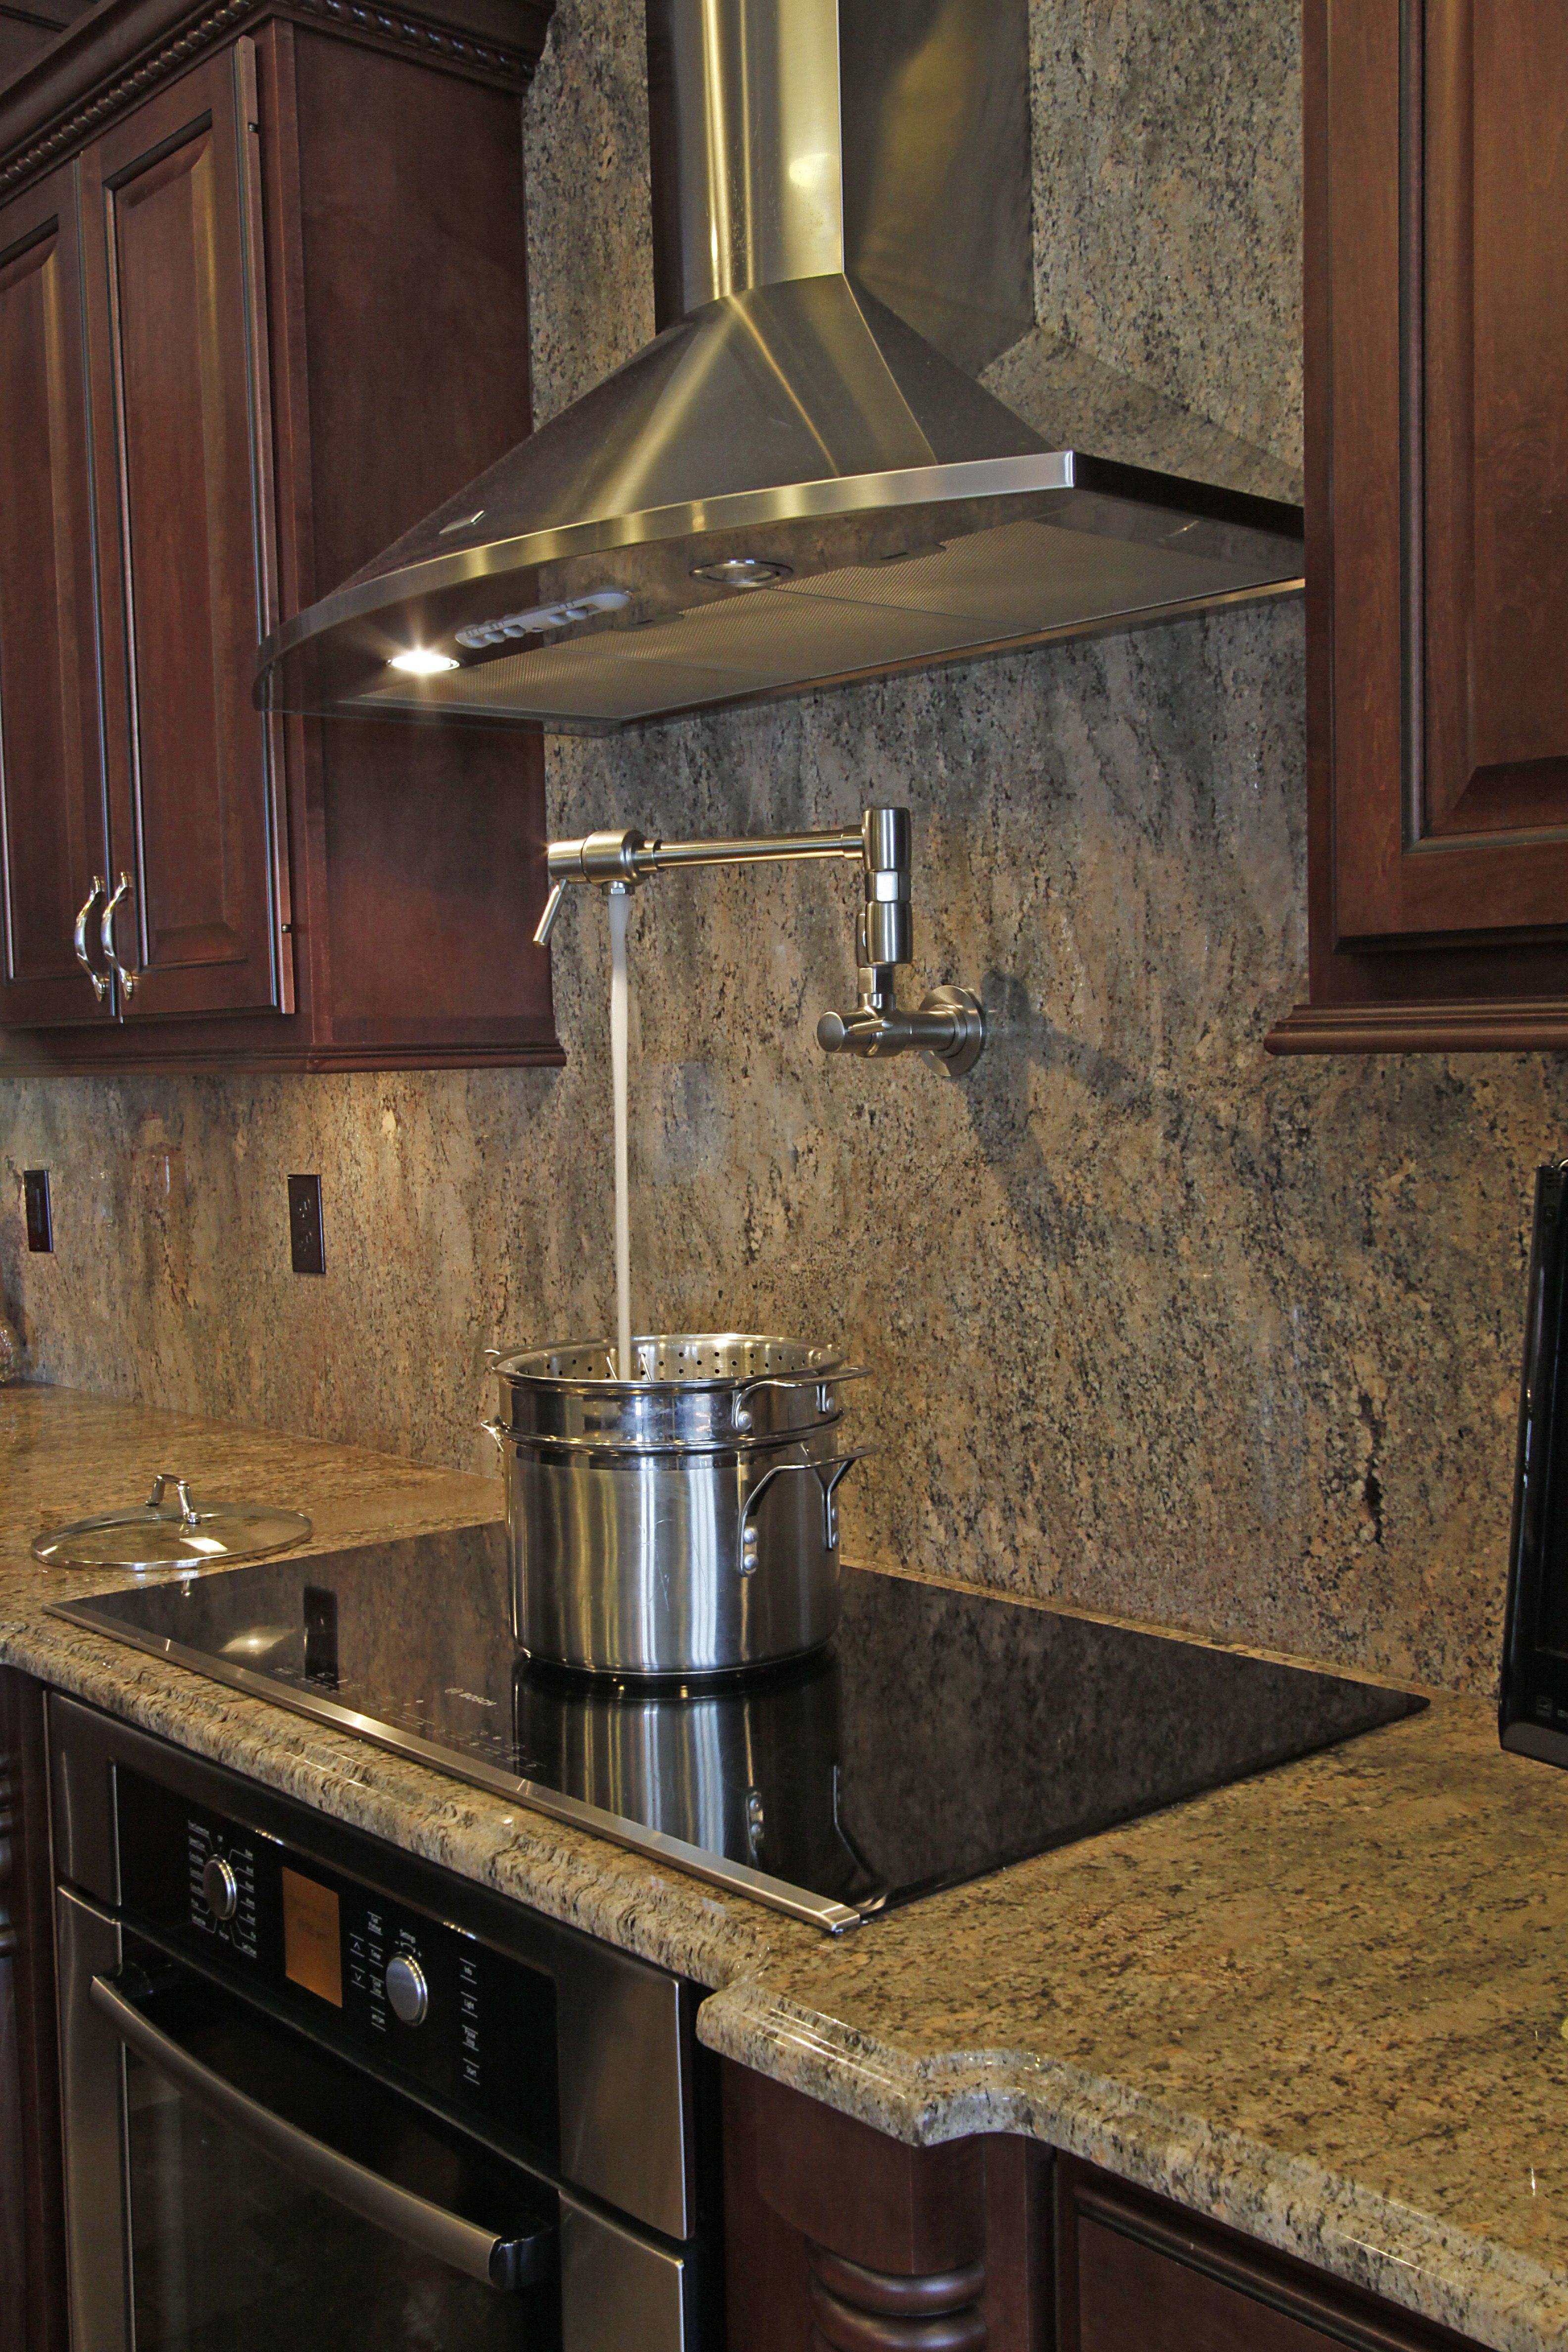 New Electric Stove with Wall Mounted Pot Filler! Never ...